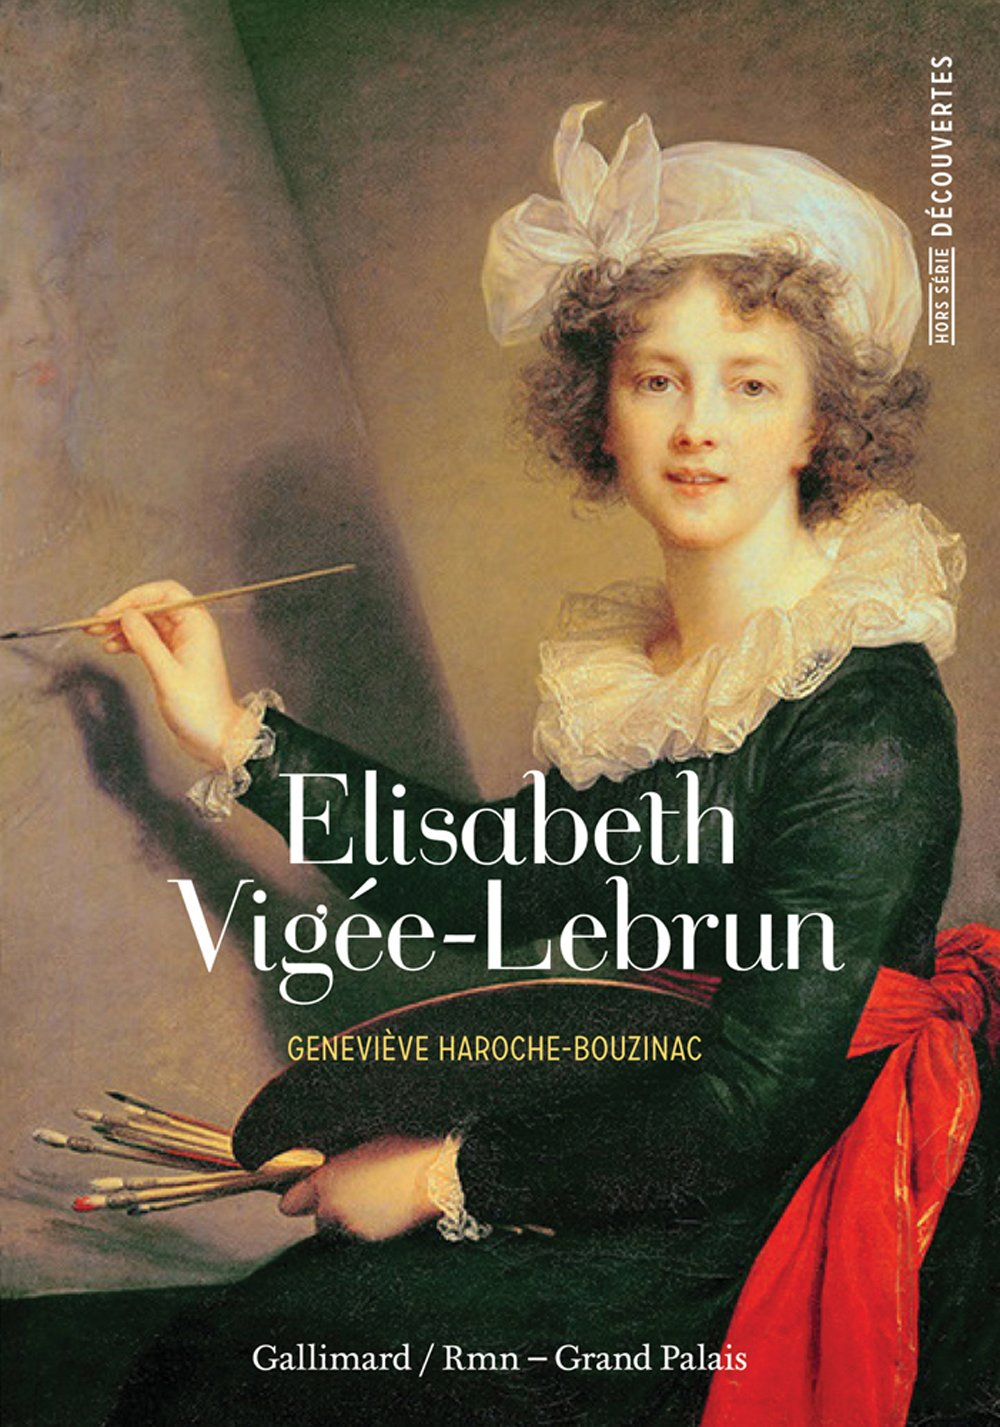 Memoirs of Madame Vigée Lebrun translated by Lionel Strachey